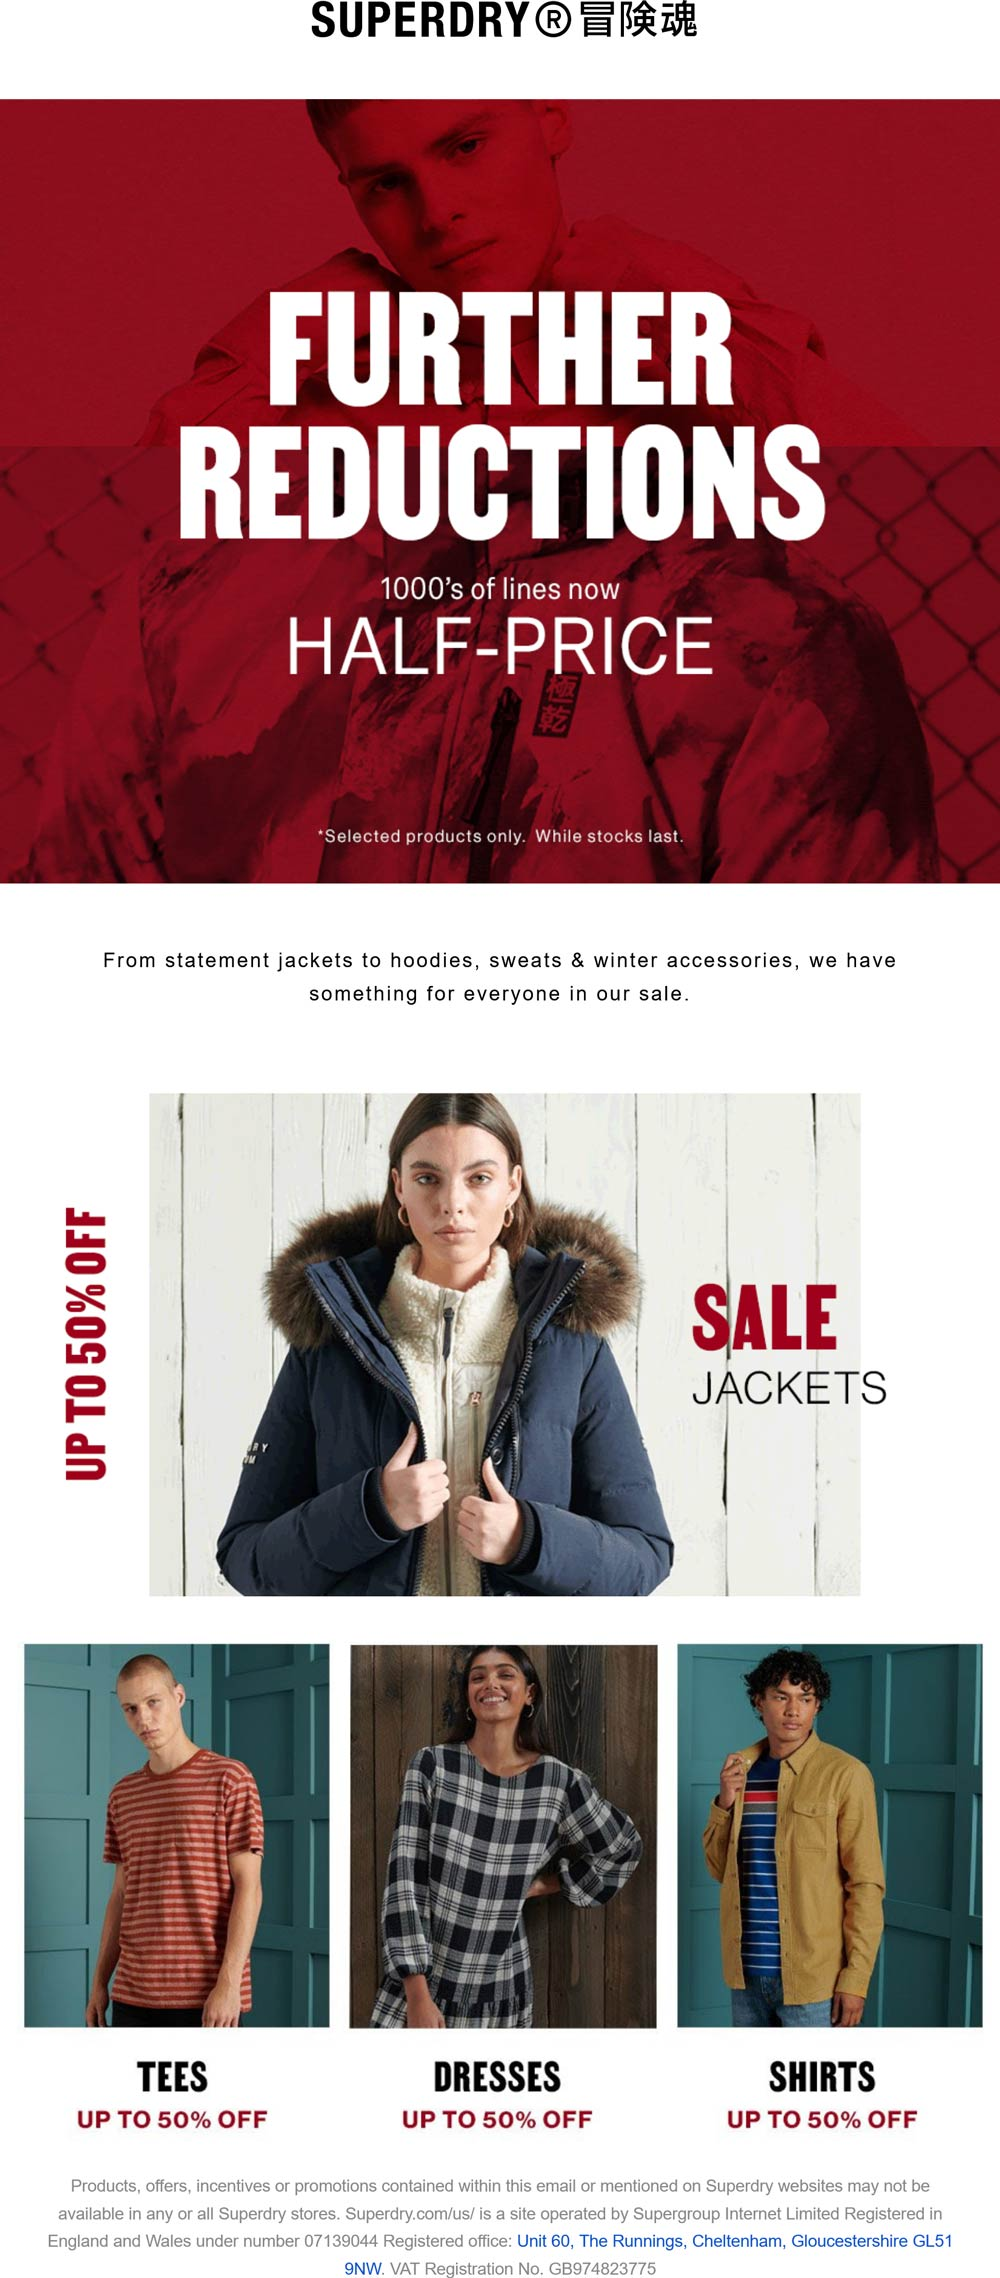 Superdry stores Coupon  50% off thousands of lines at Superdry #superdry